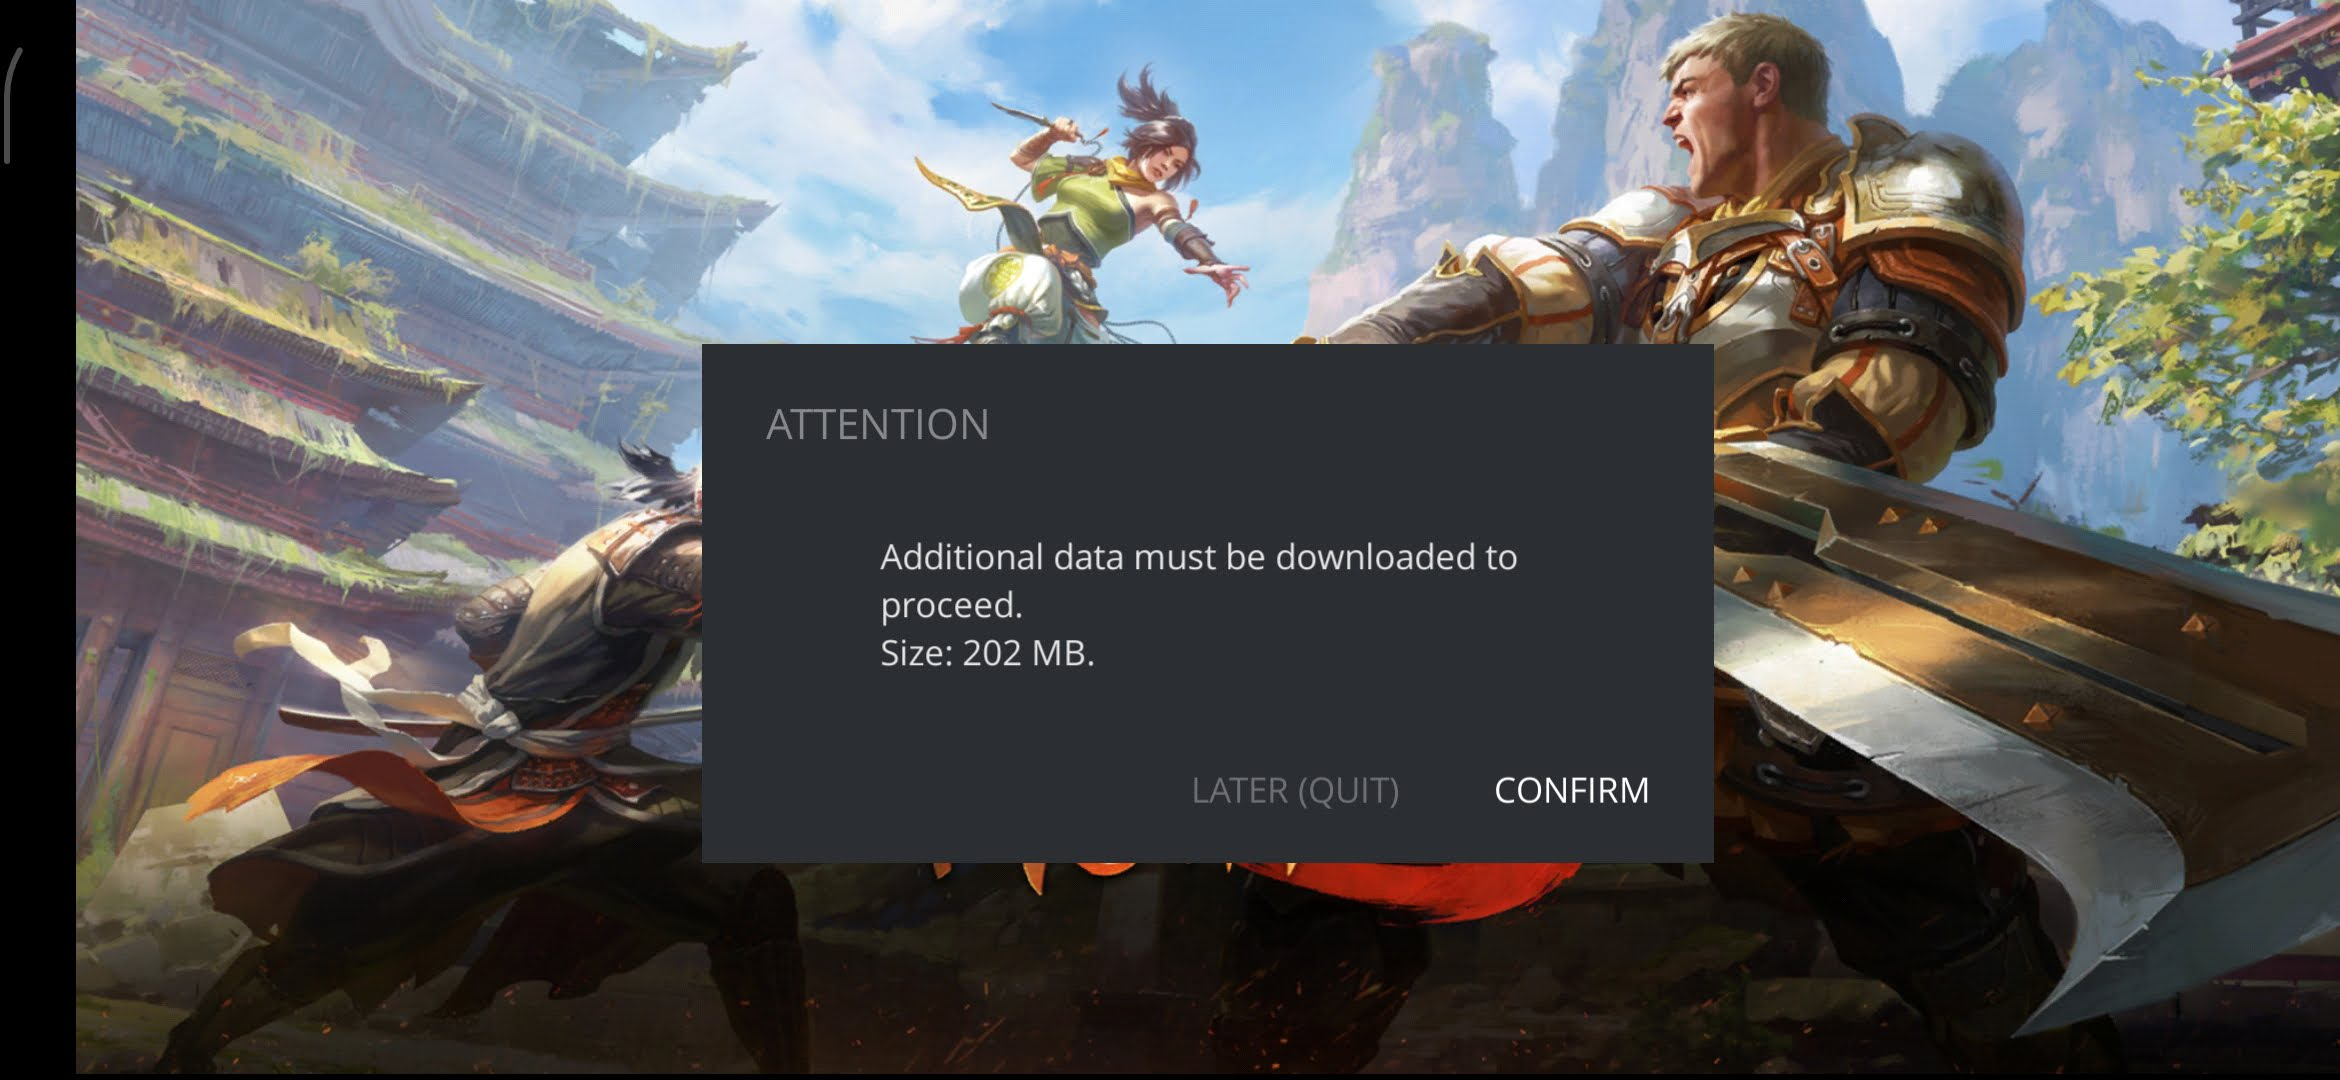 delete other files from games